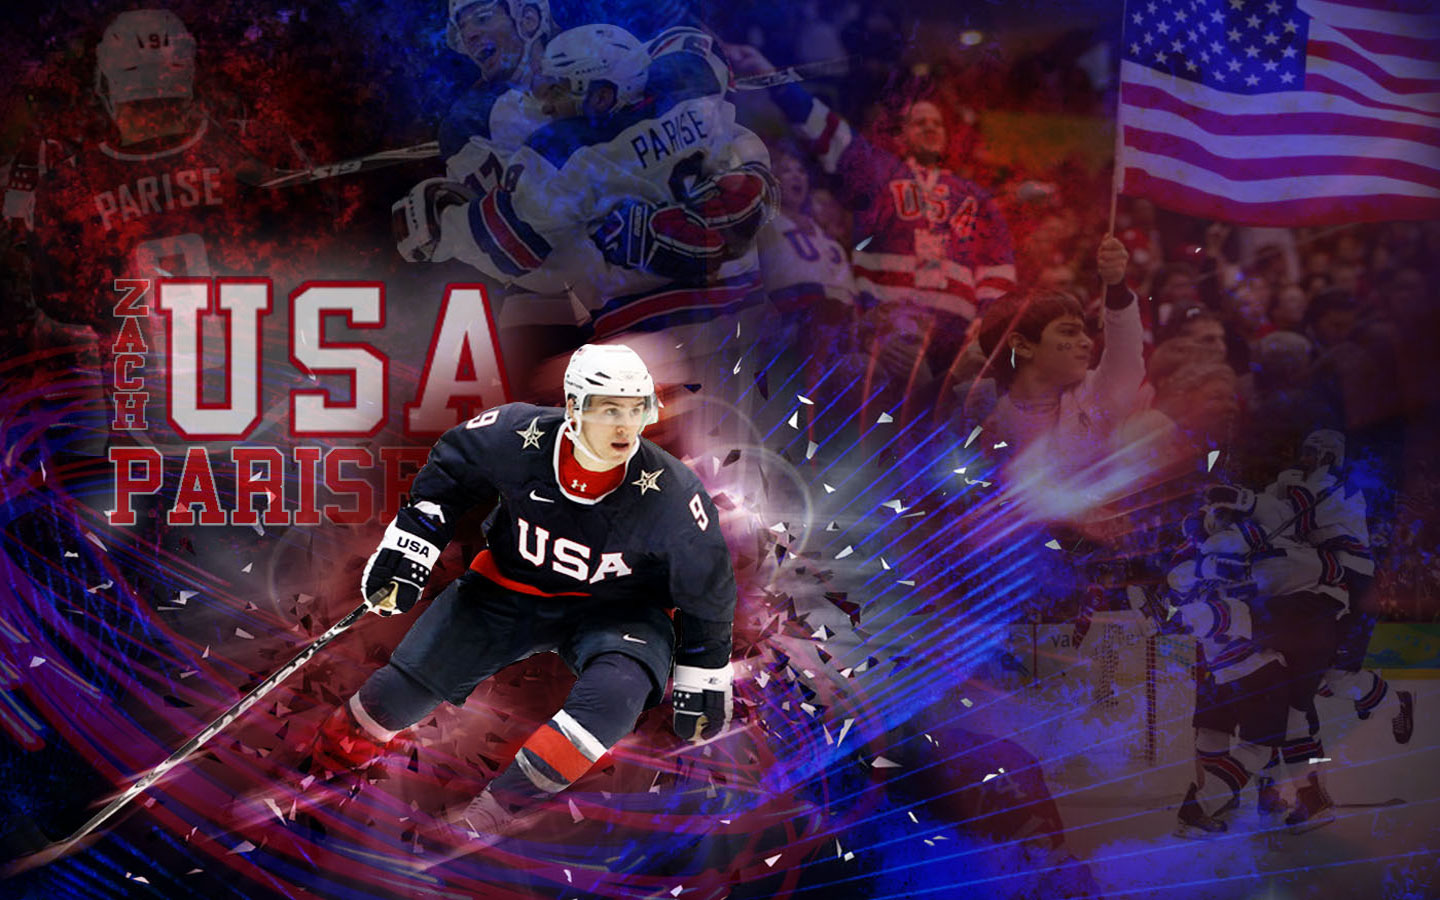 NHL Wallpapers   Zach Parise USA Team Widescreen wallpaper 1440x900